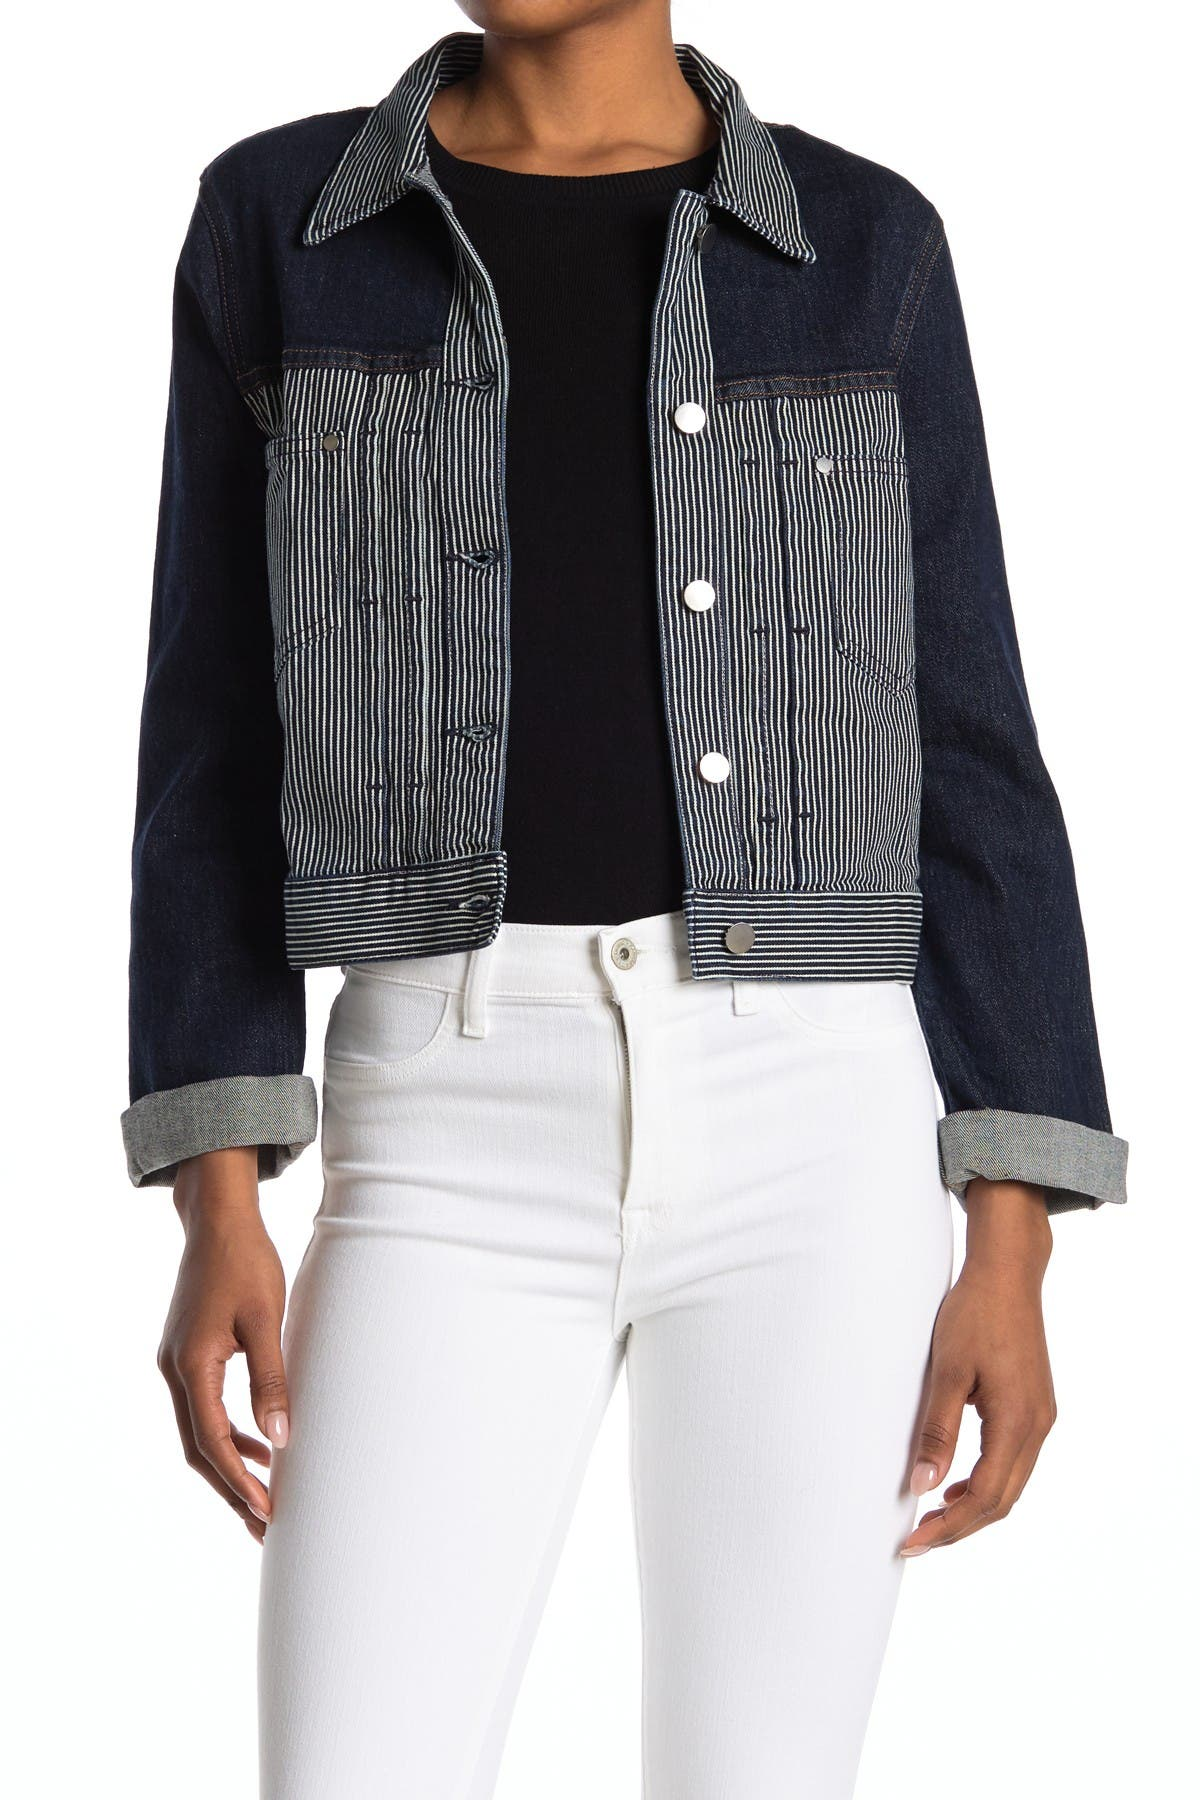 Image of BALDWIN Leon Colorblock Denim Jacket